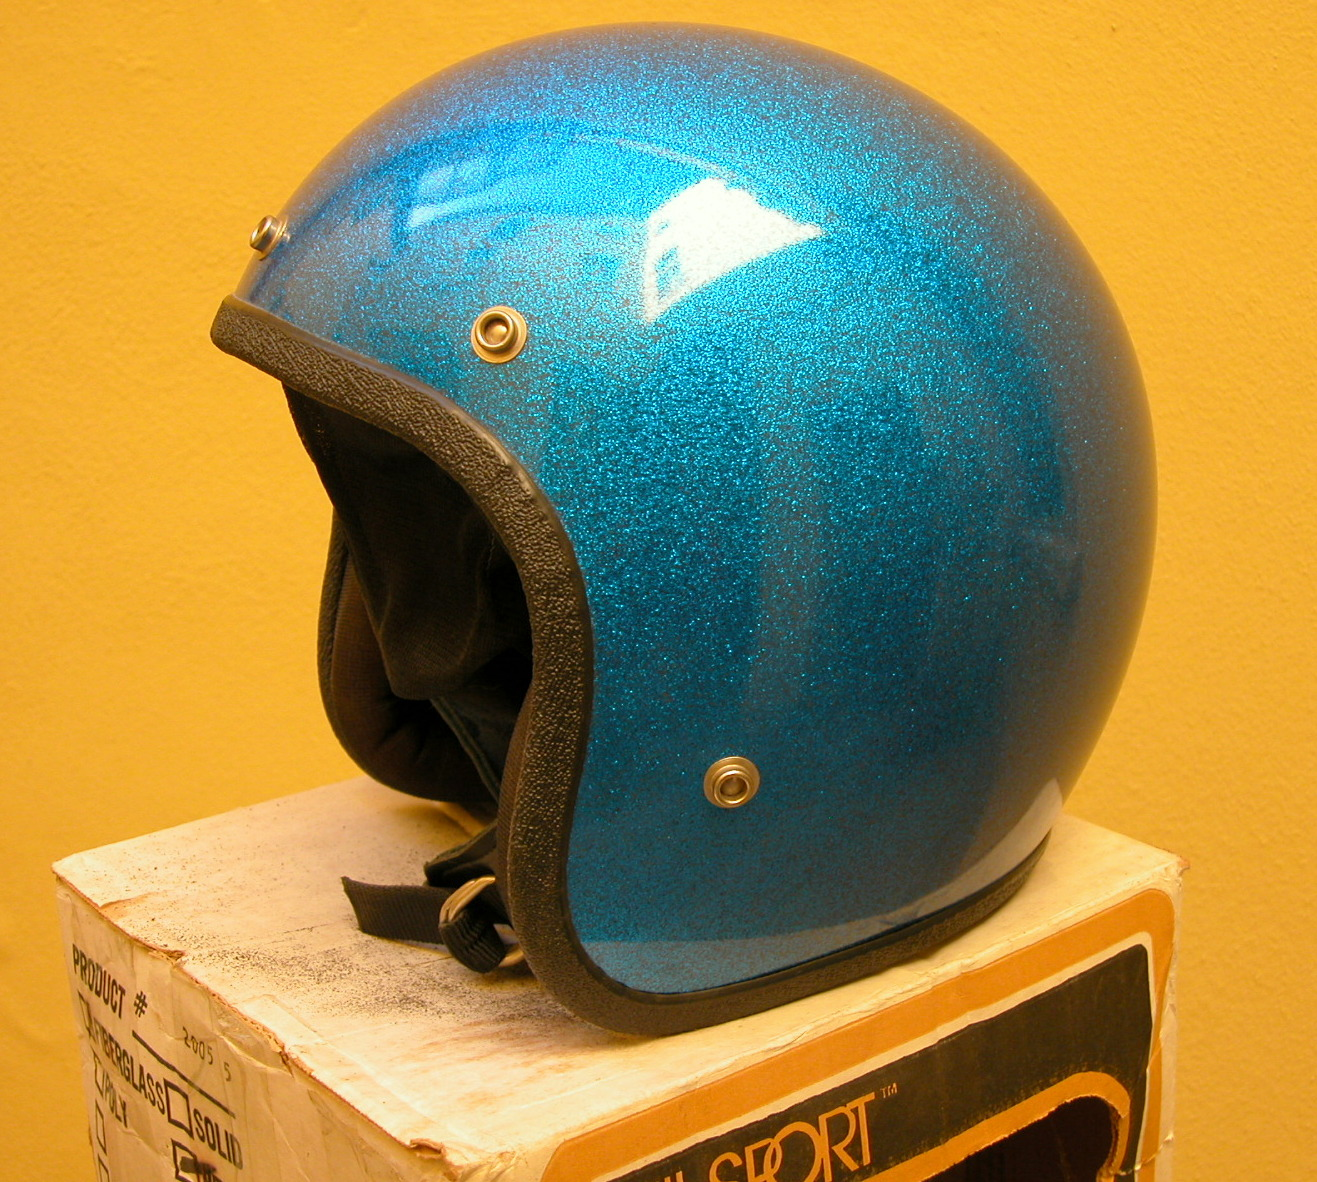 for sale vintage Buco/AllSport metalflake helmet